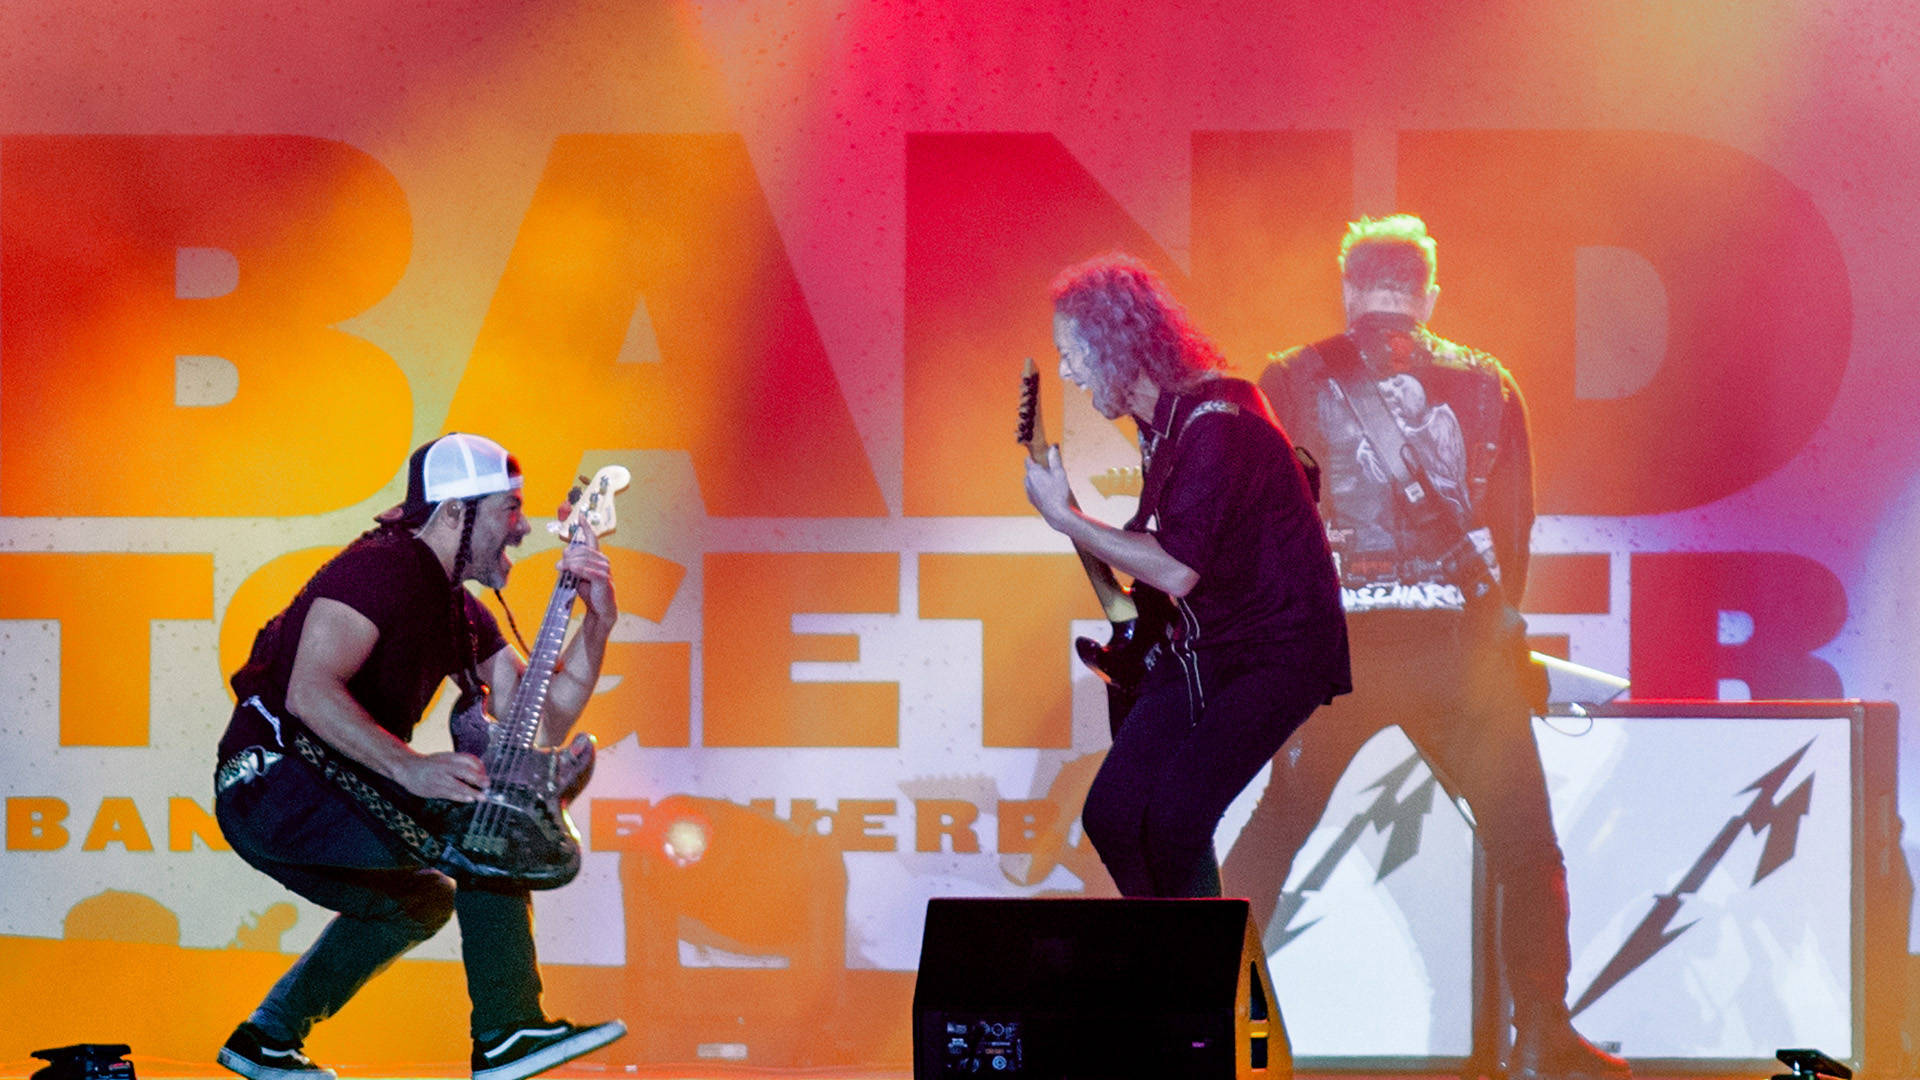 Metallica headlines Band Together Bay Area, a benefit concert for North Bay Fire relief at AT&T Park on Thursday, November 9.